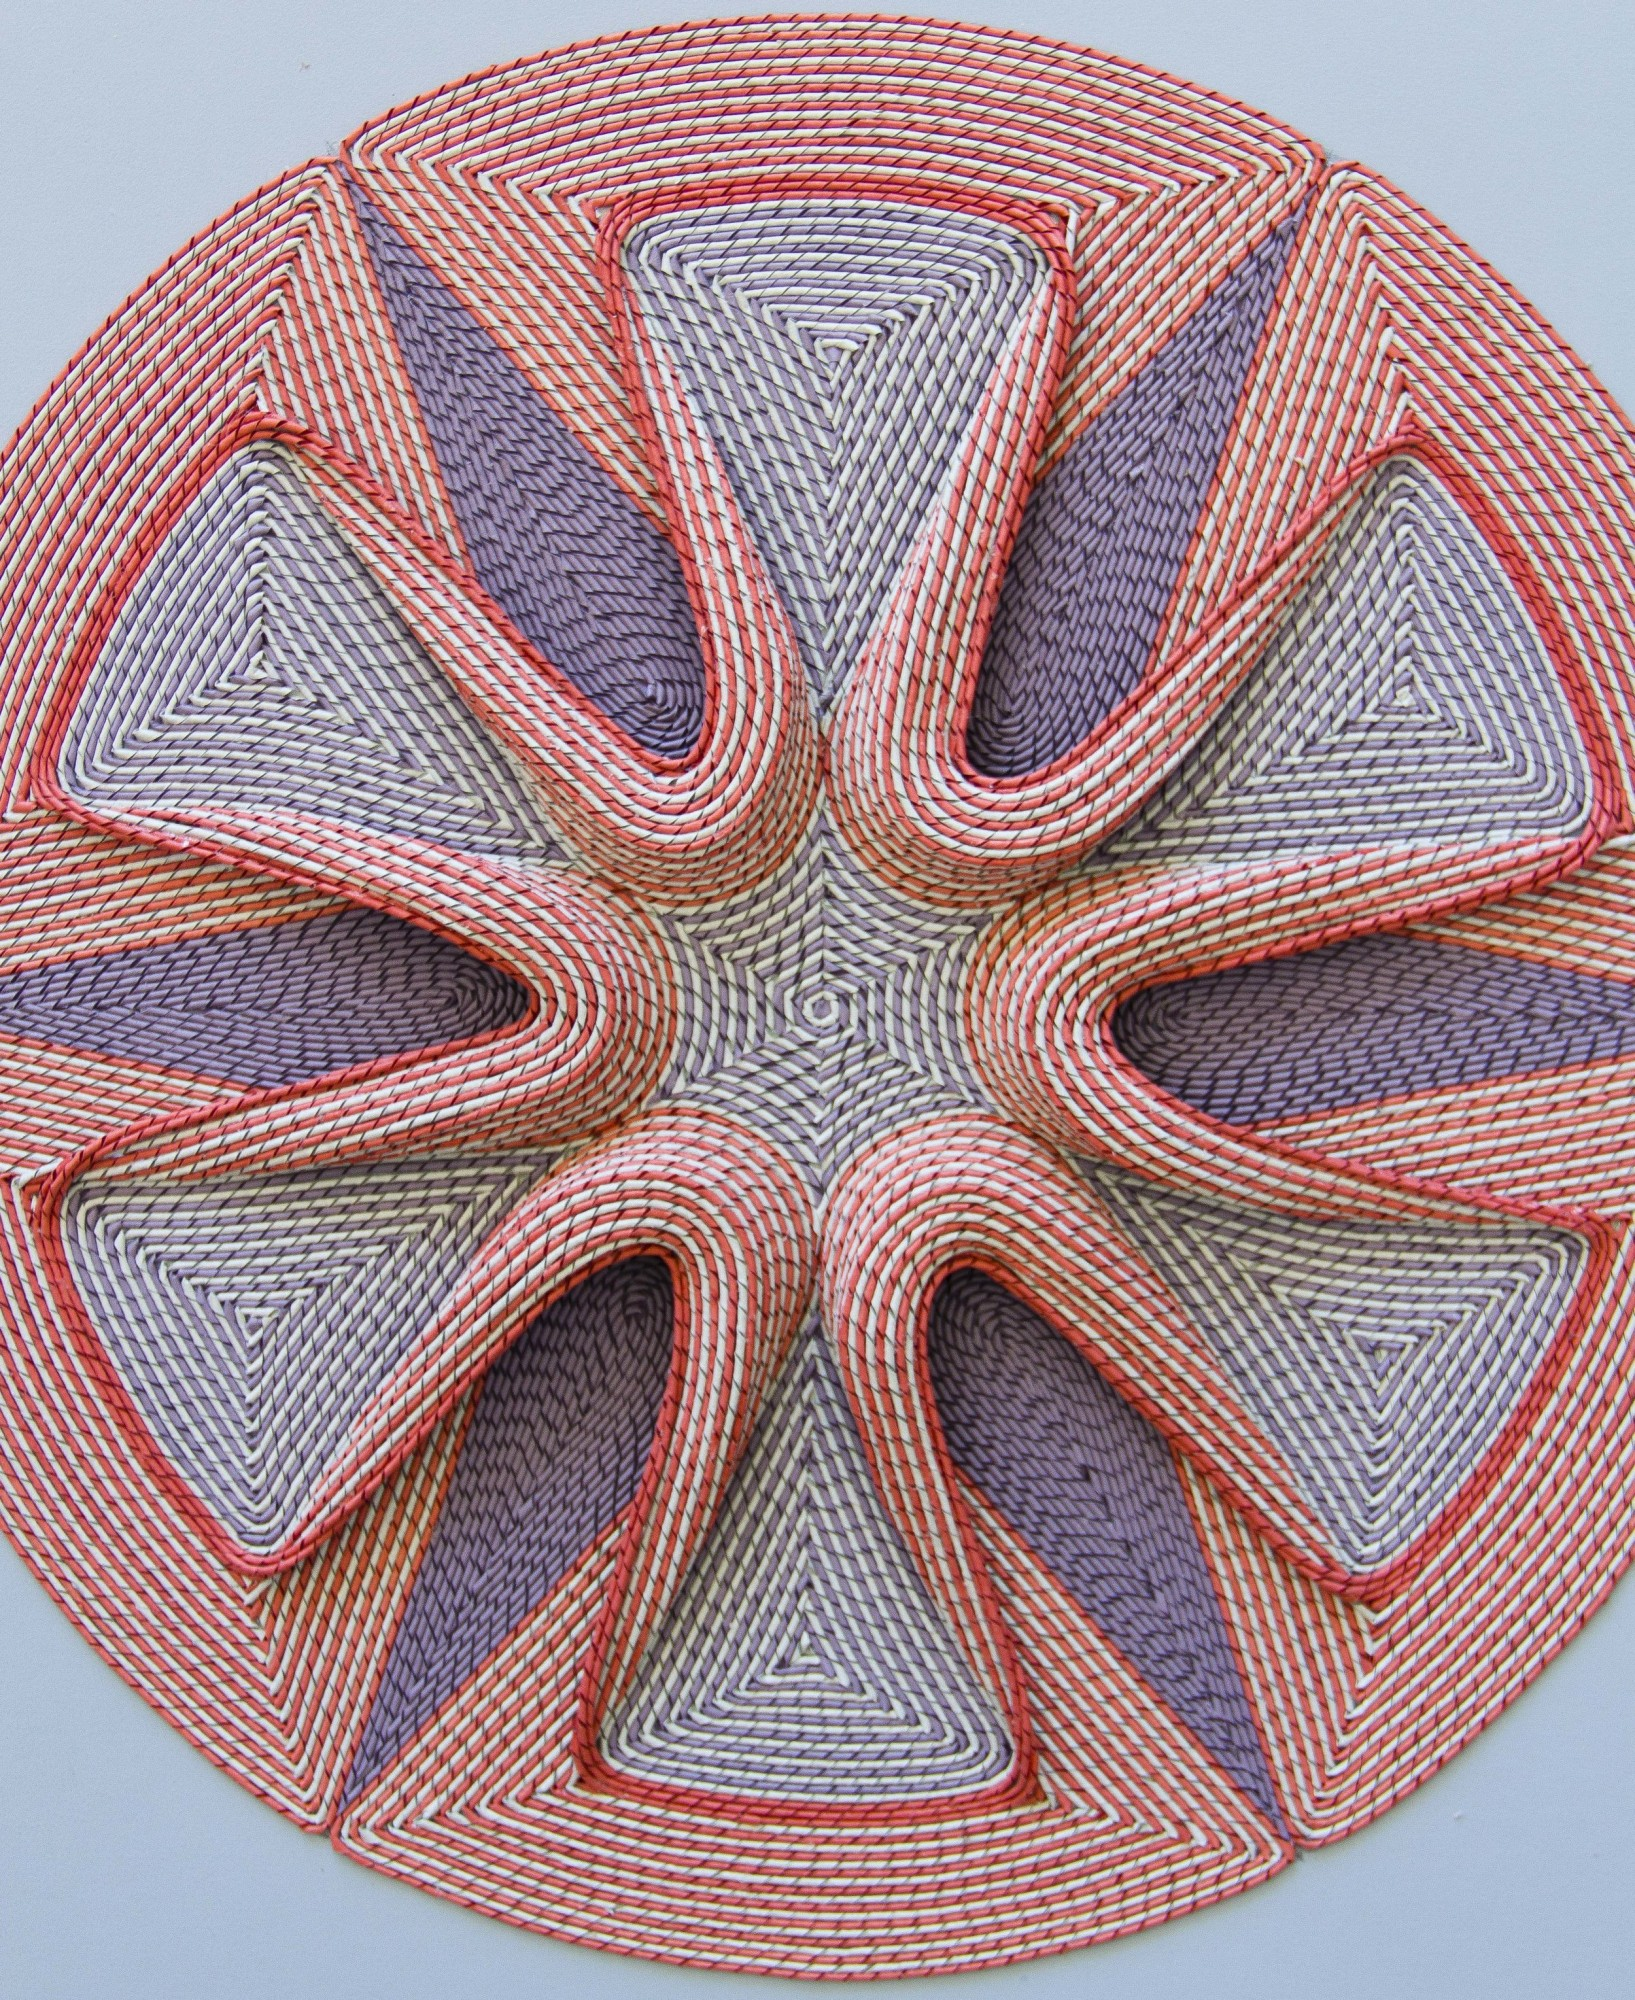 New Intricate Curled Paper Tapestries by Gunjan Aylawadi - Blossom